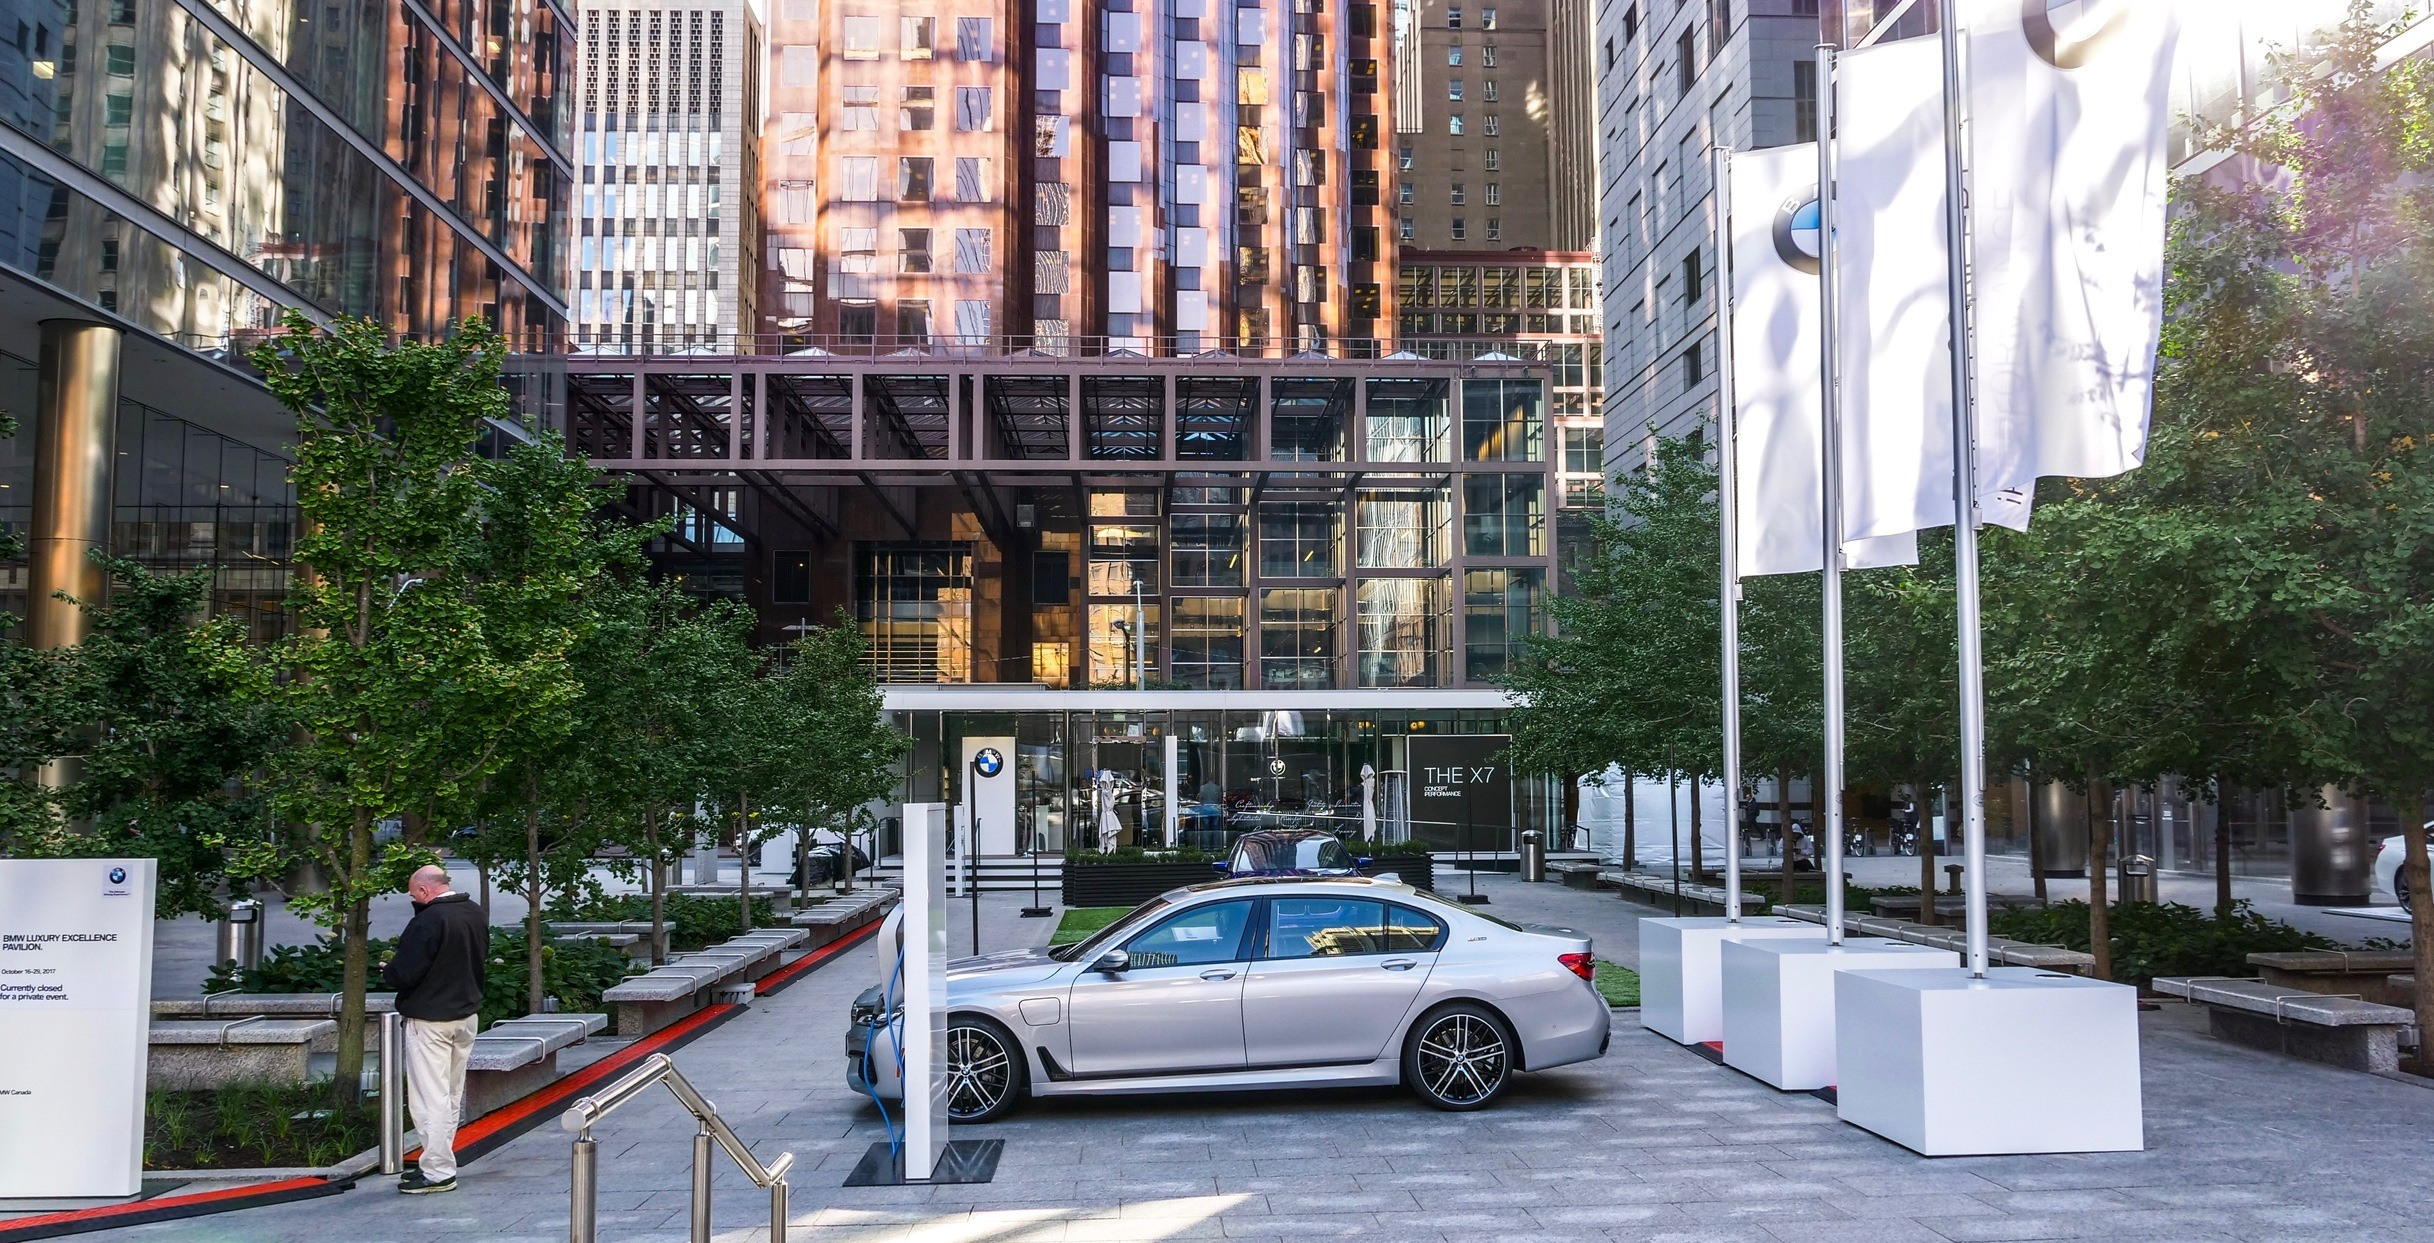 BMW is hosting a pop-up pavilion in downtown Toronto this week